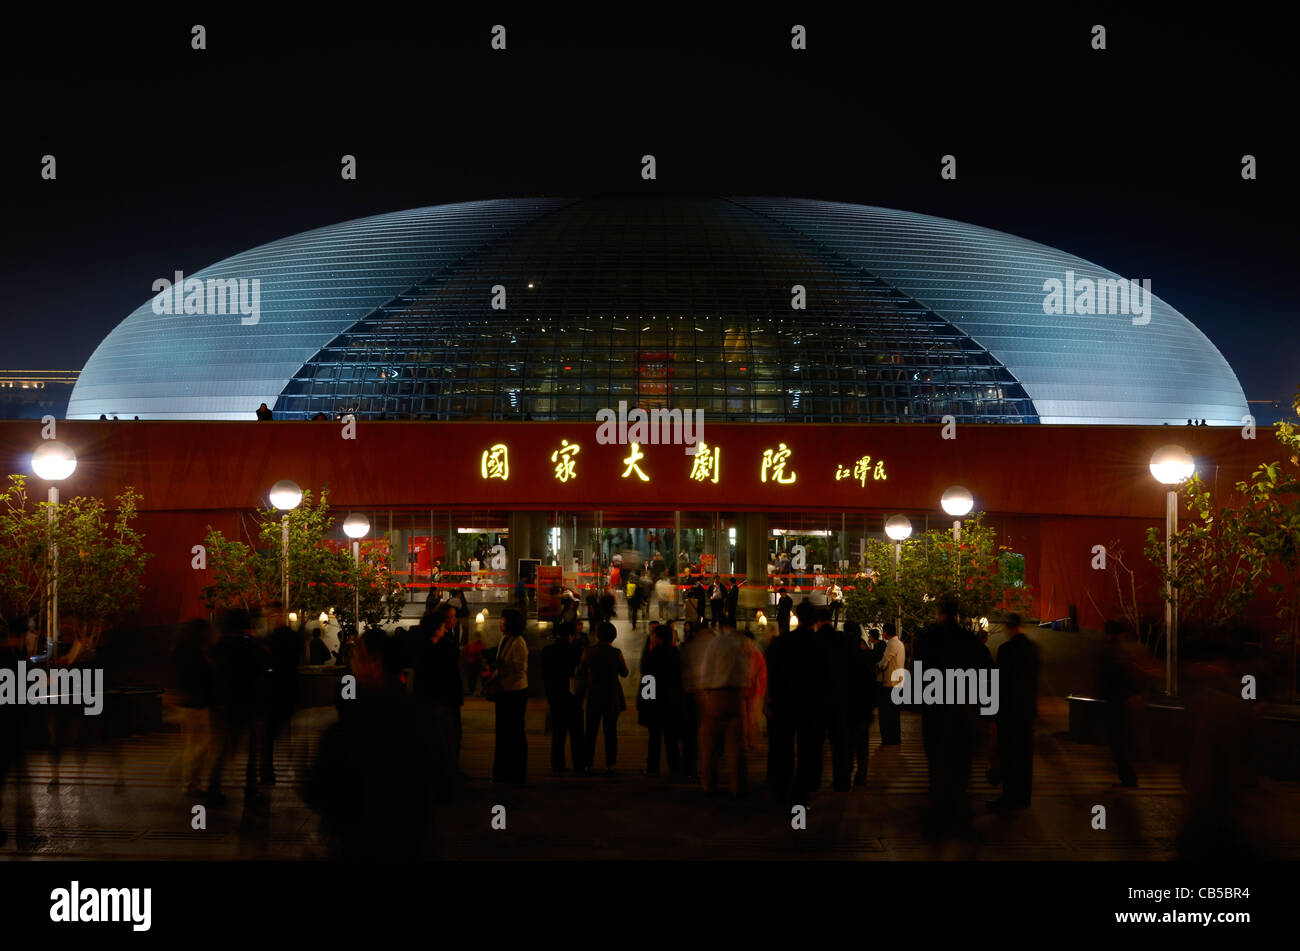 Entrance to the National Centre for the Performing Arts egg at night Beijing Peoples Republic of China - Stock Image